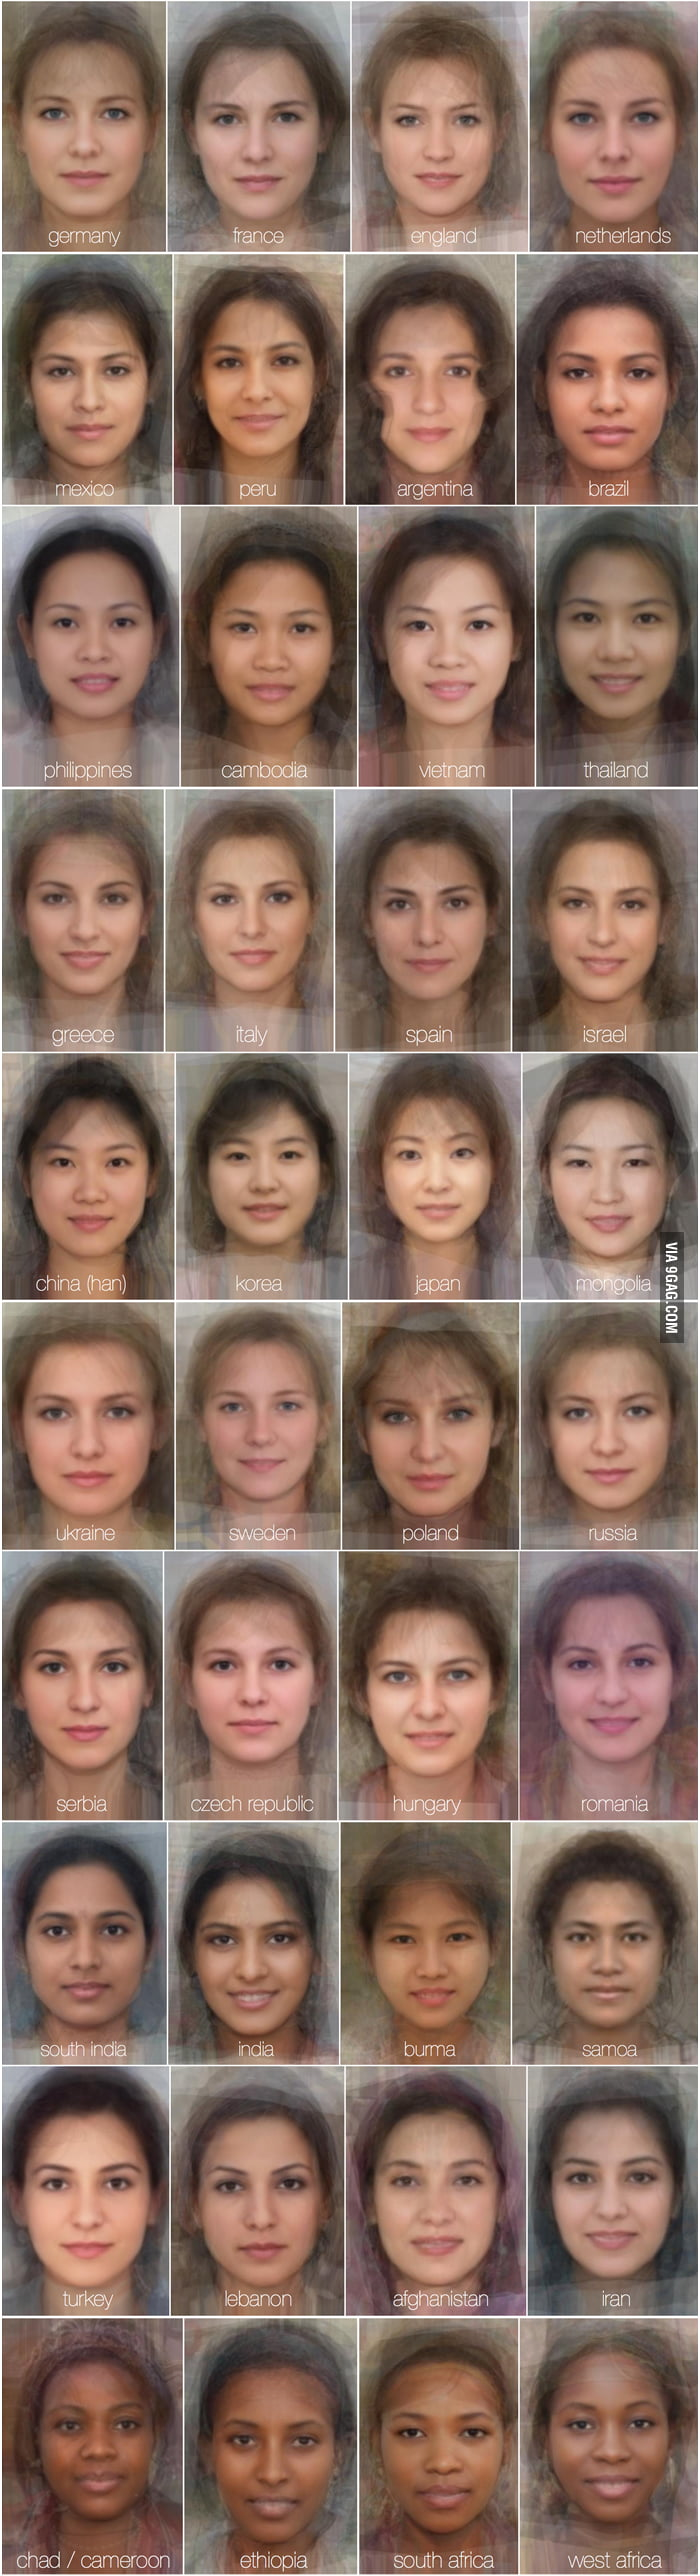 The Average Women Faces In Different Countries